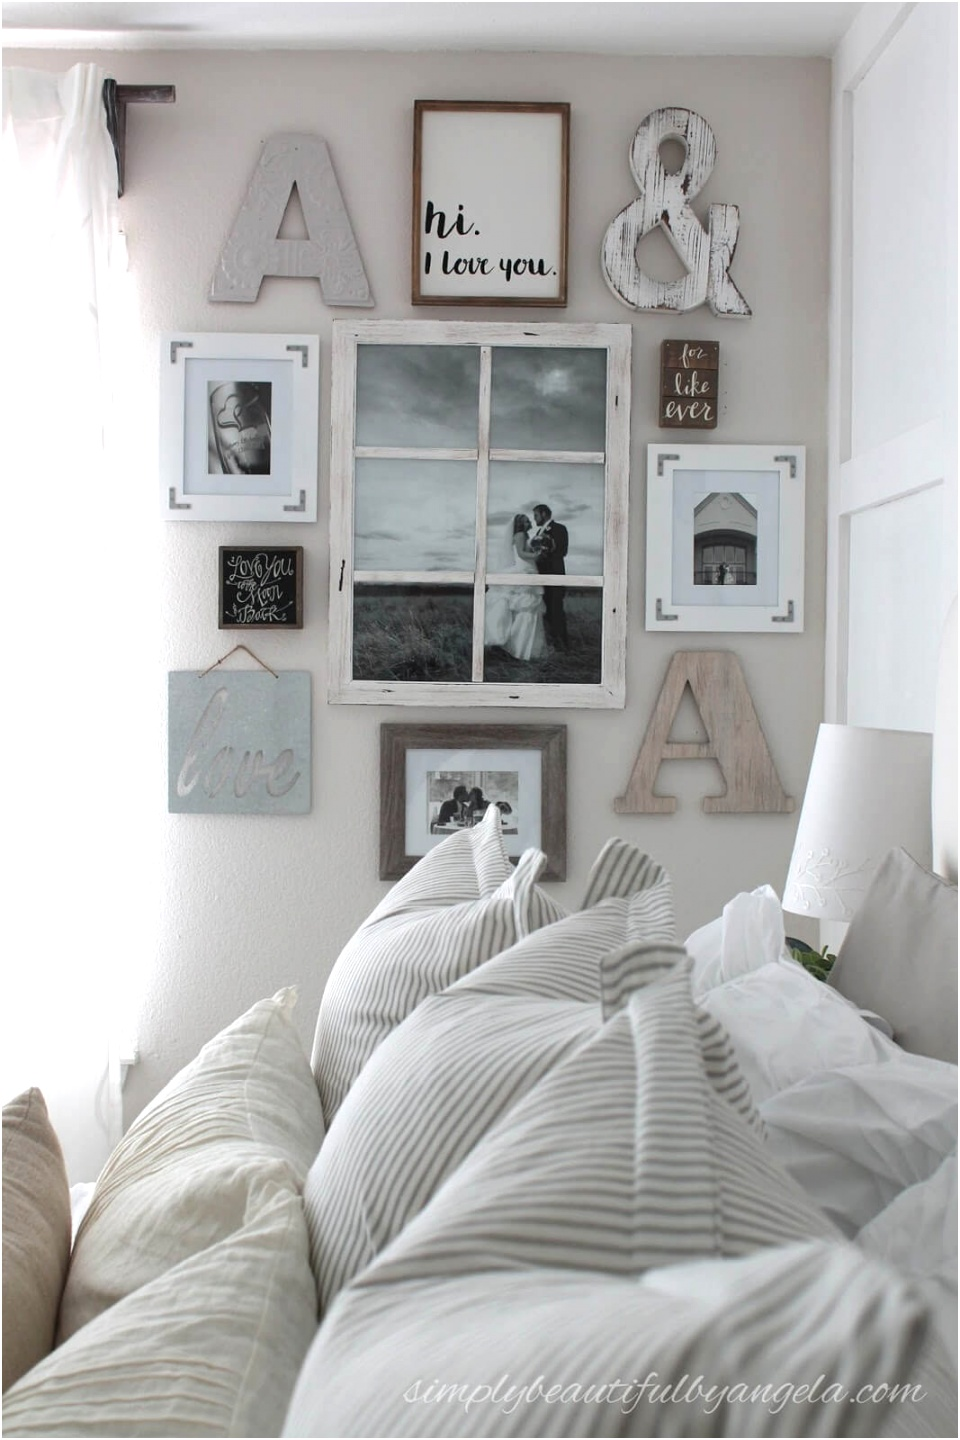 07 bedroom wall decor ideas homebnc